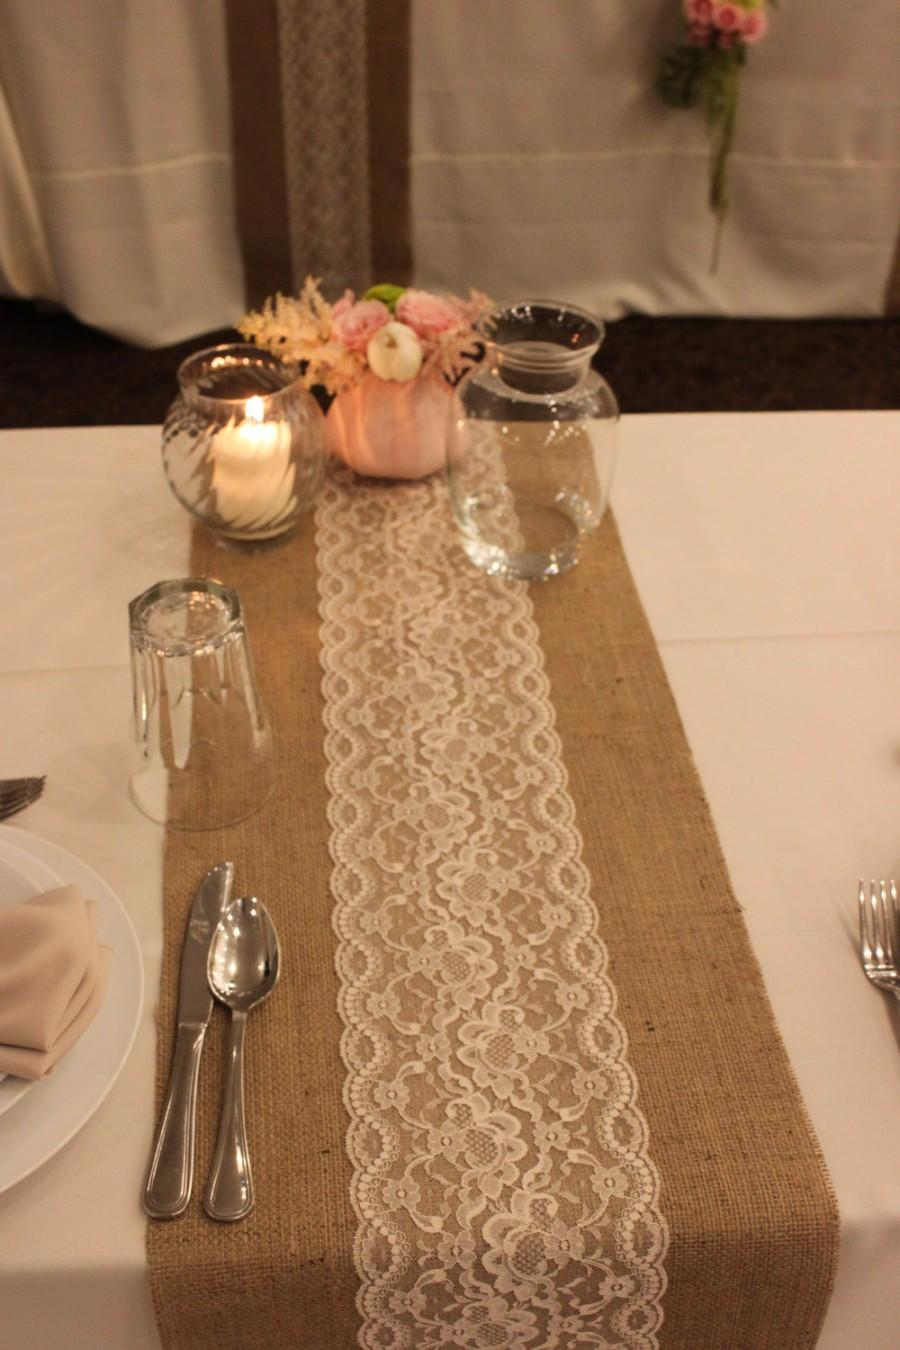 Sale 12 ft 12 x 144 burlap lace table runner wedding decor lace sale 12 ft 12 x 144 burlap lace table runner wedding decor lace burlap wedding table runner ivory junglespirit